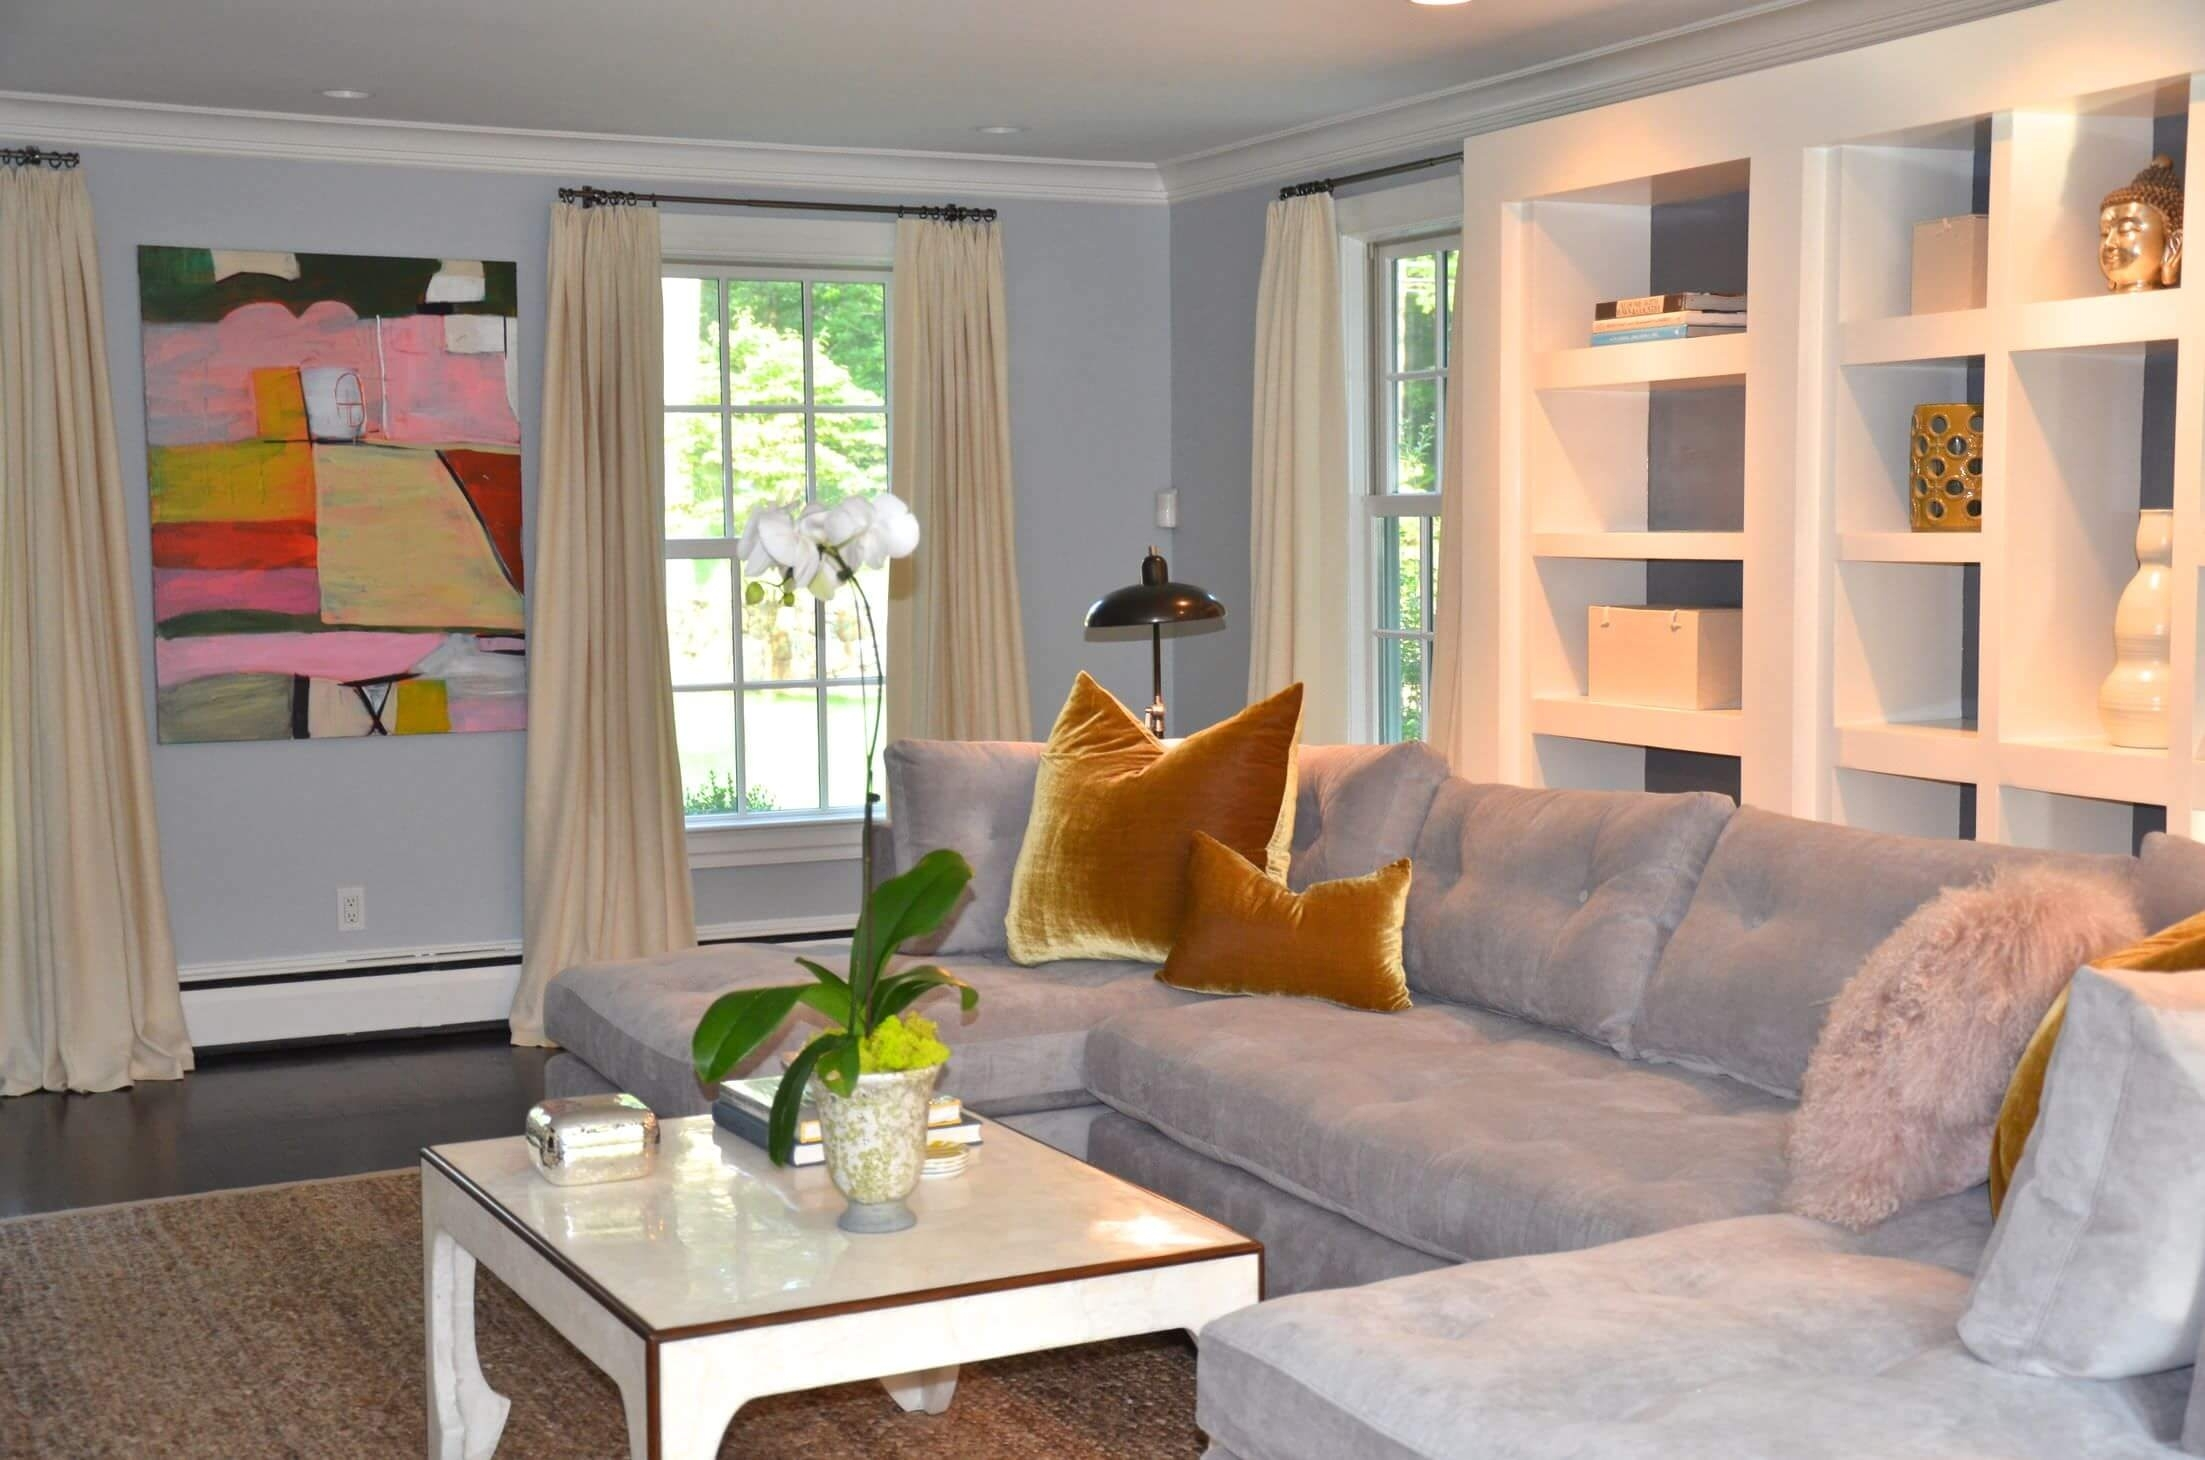 Best Living Room Colors For 2018 Regarding Latest Wall Accents Color Combinations (View 7 of 15)